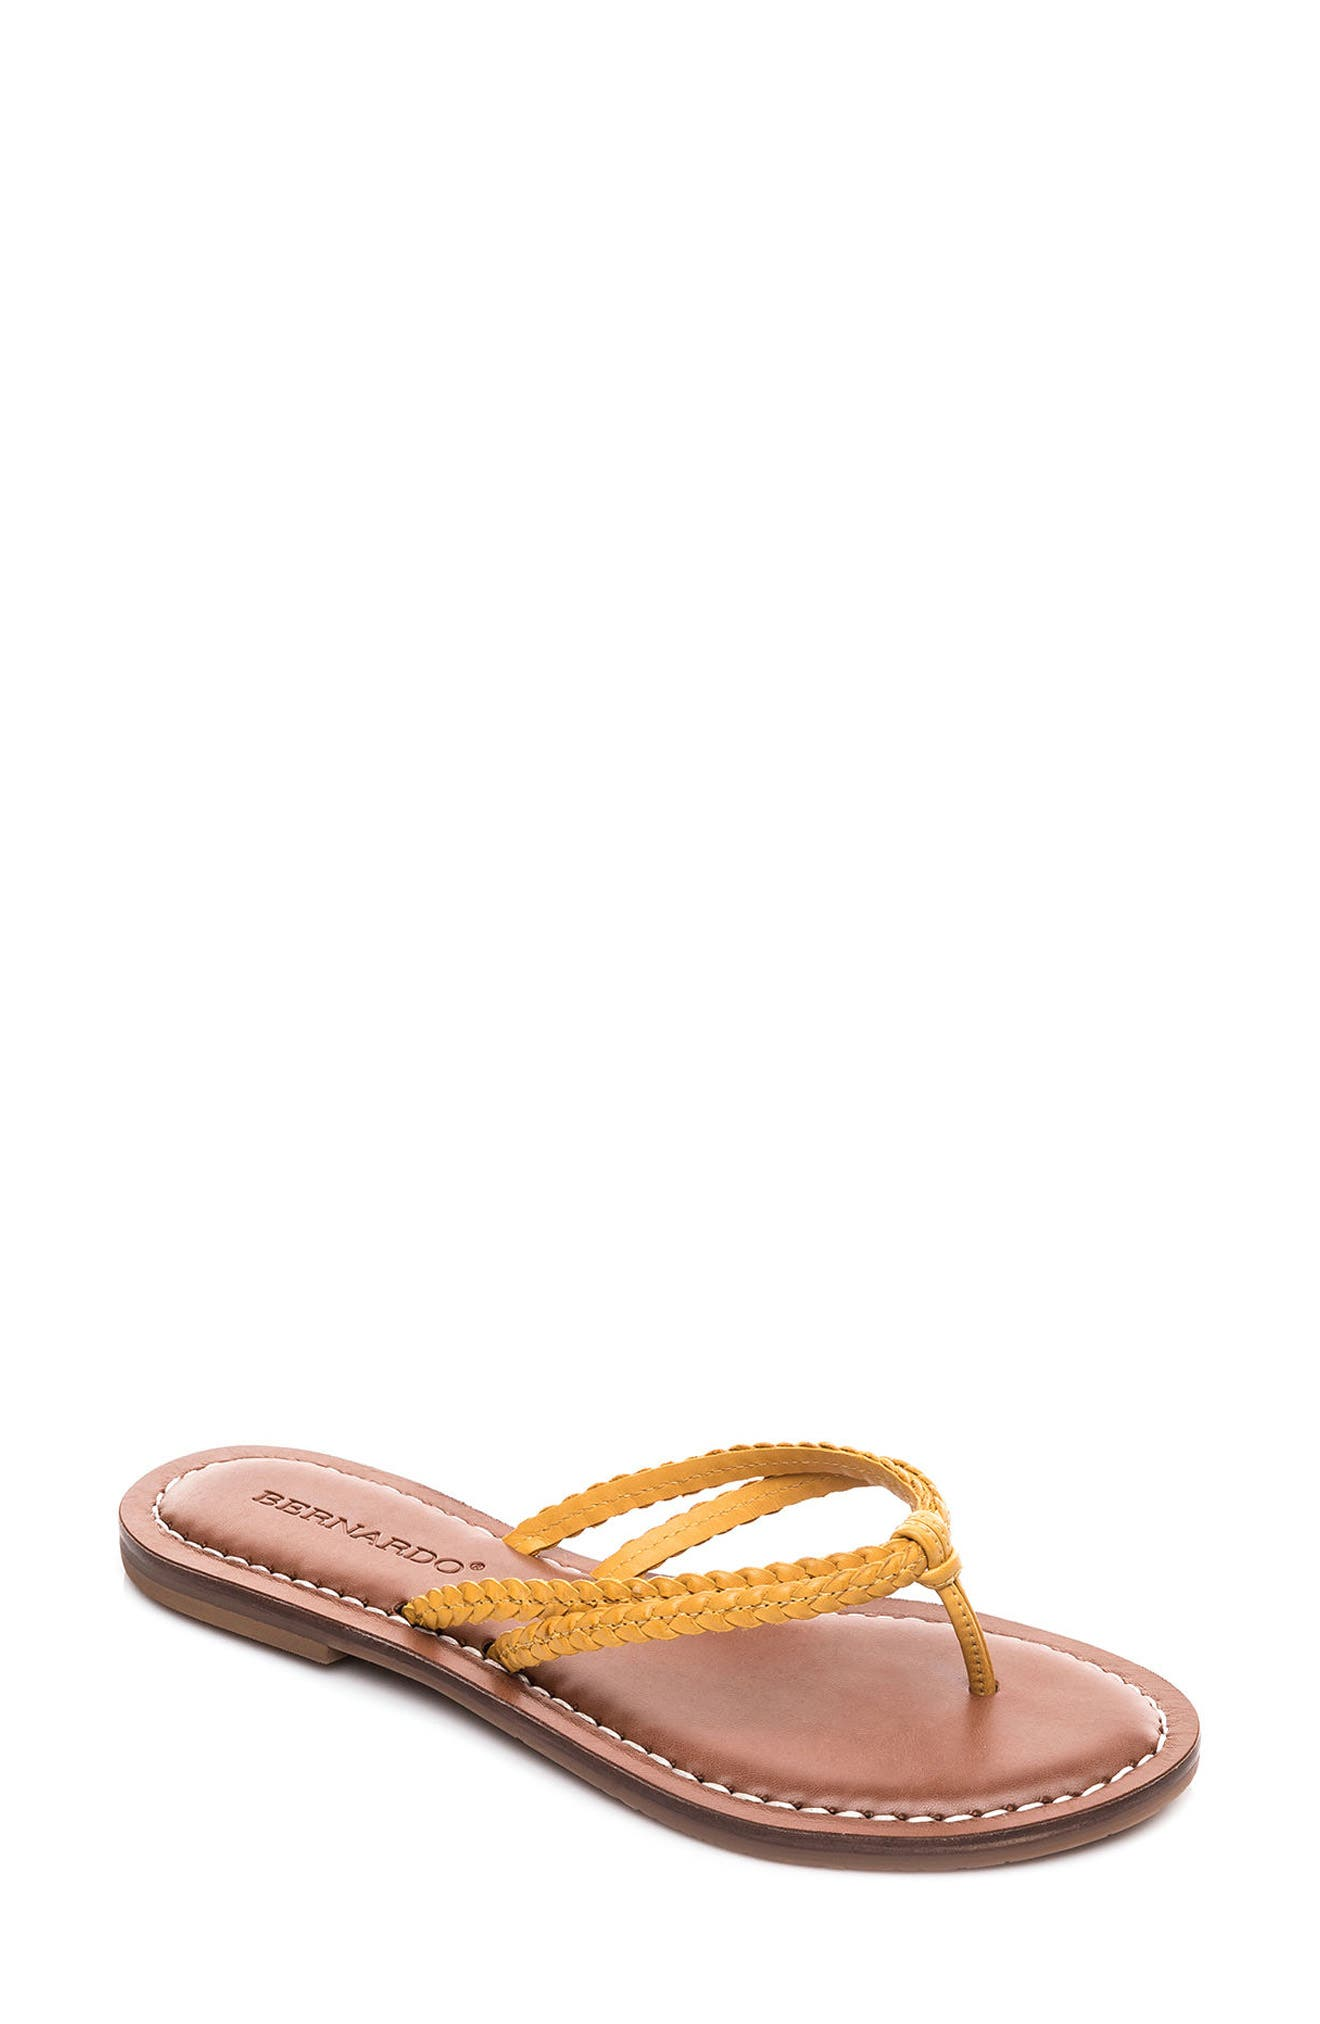 Alternate Image 1 Selected - Bernardo Greta Braided Strap Sandal (Women)